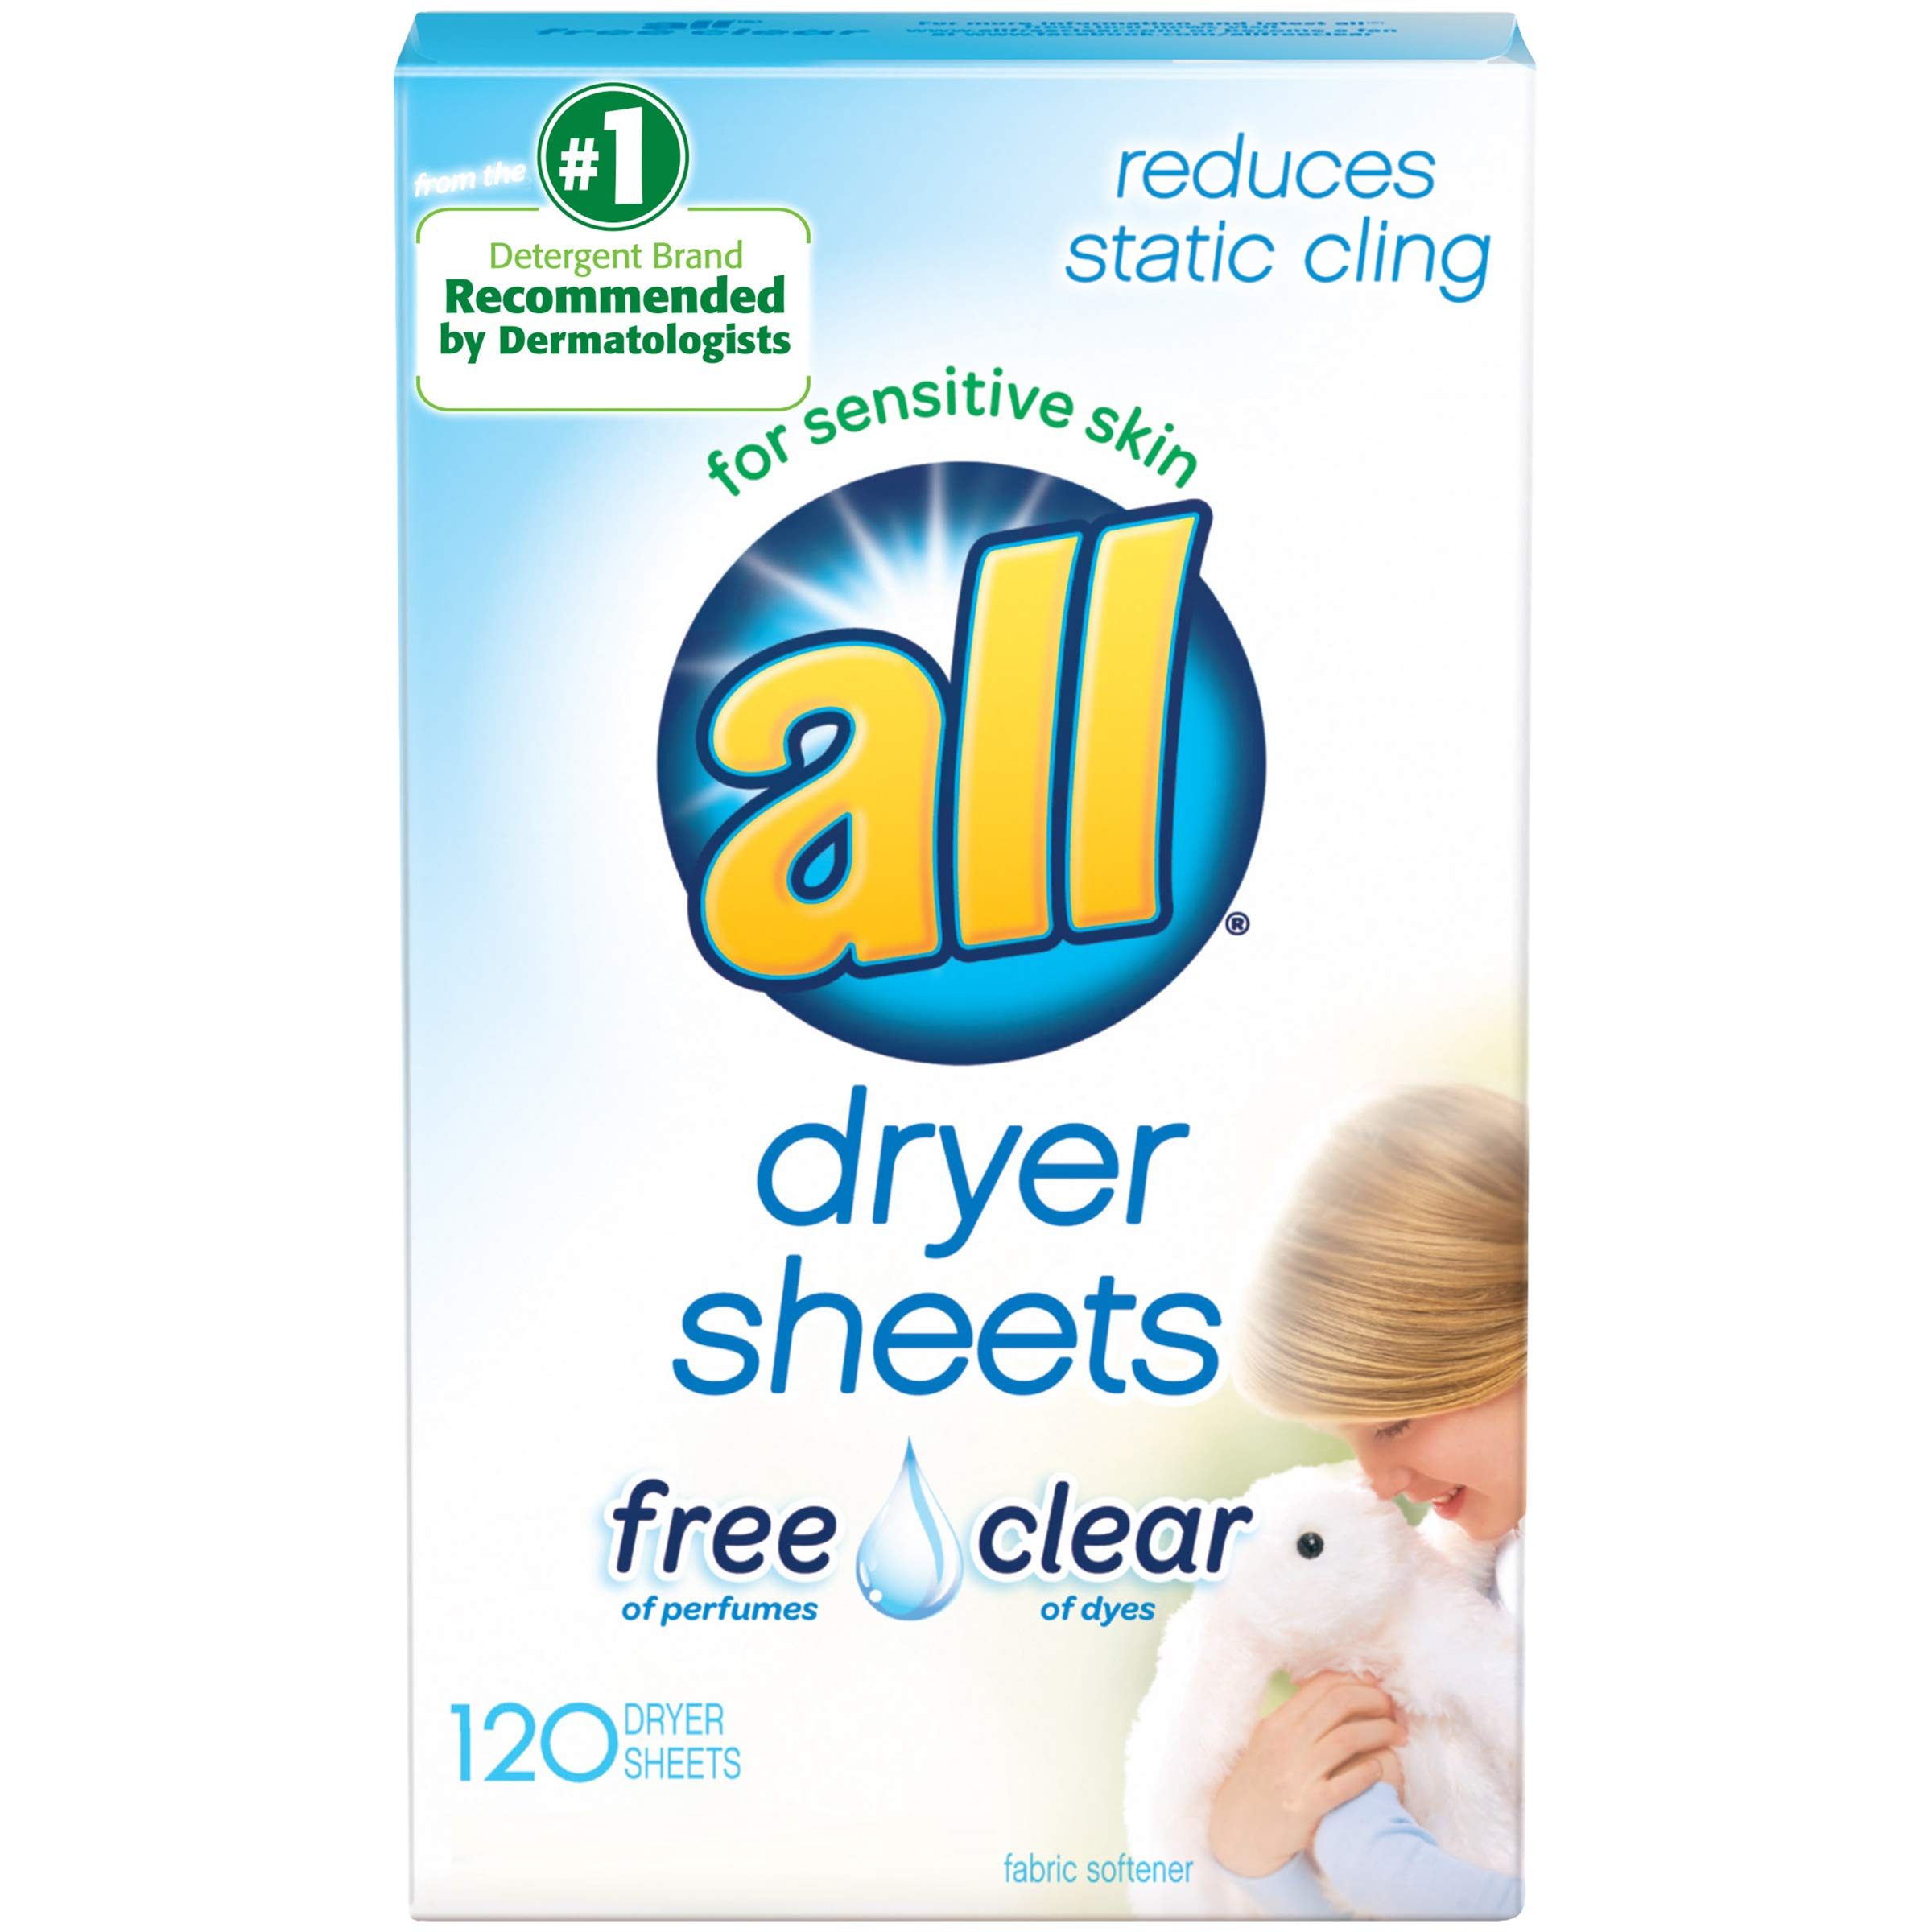 All Fabric Softener Dryer Sheets for Sensitive Skin, Free Clear, 120 Count